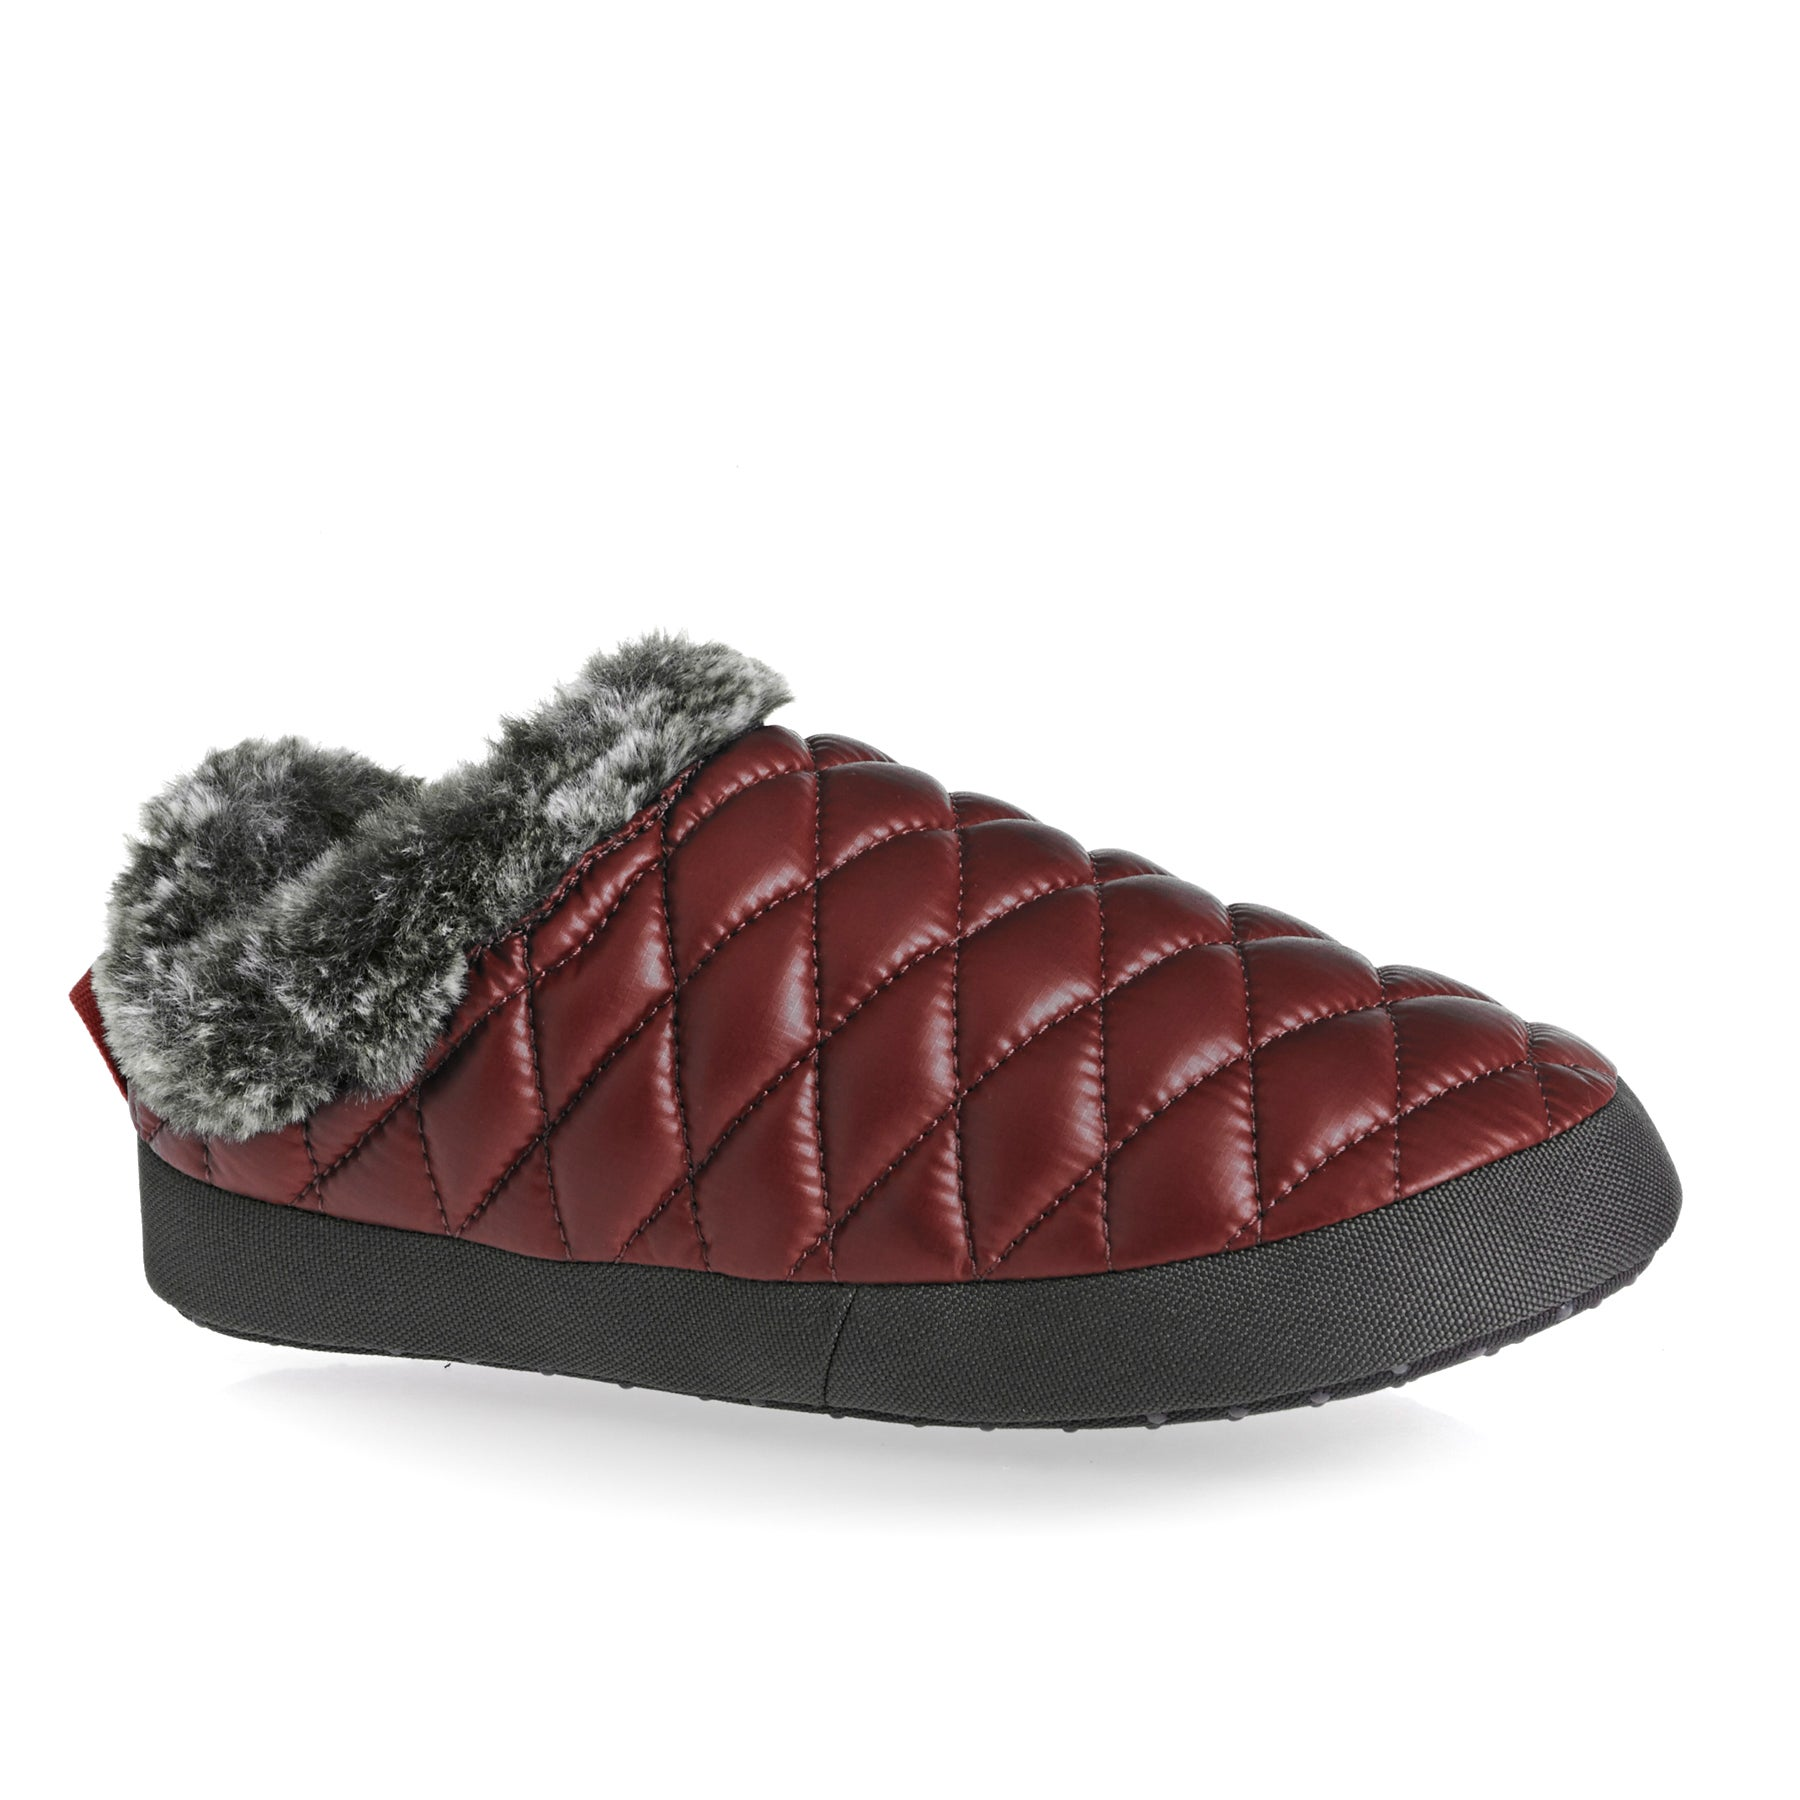 The North Face Blue Goose Down Thermoball Traction Slippers Girls M Size 3 High Quality Goods Women's Shoes